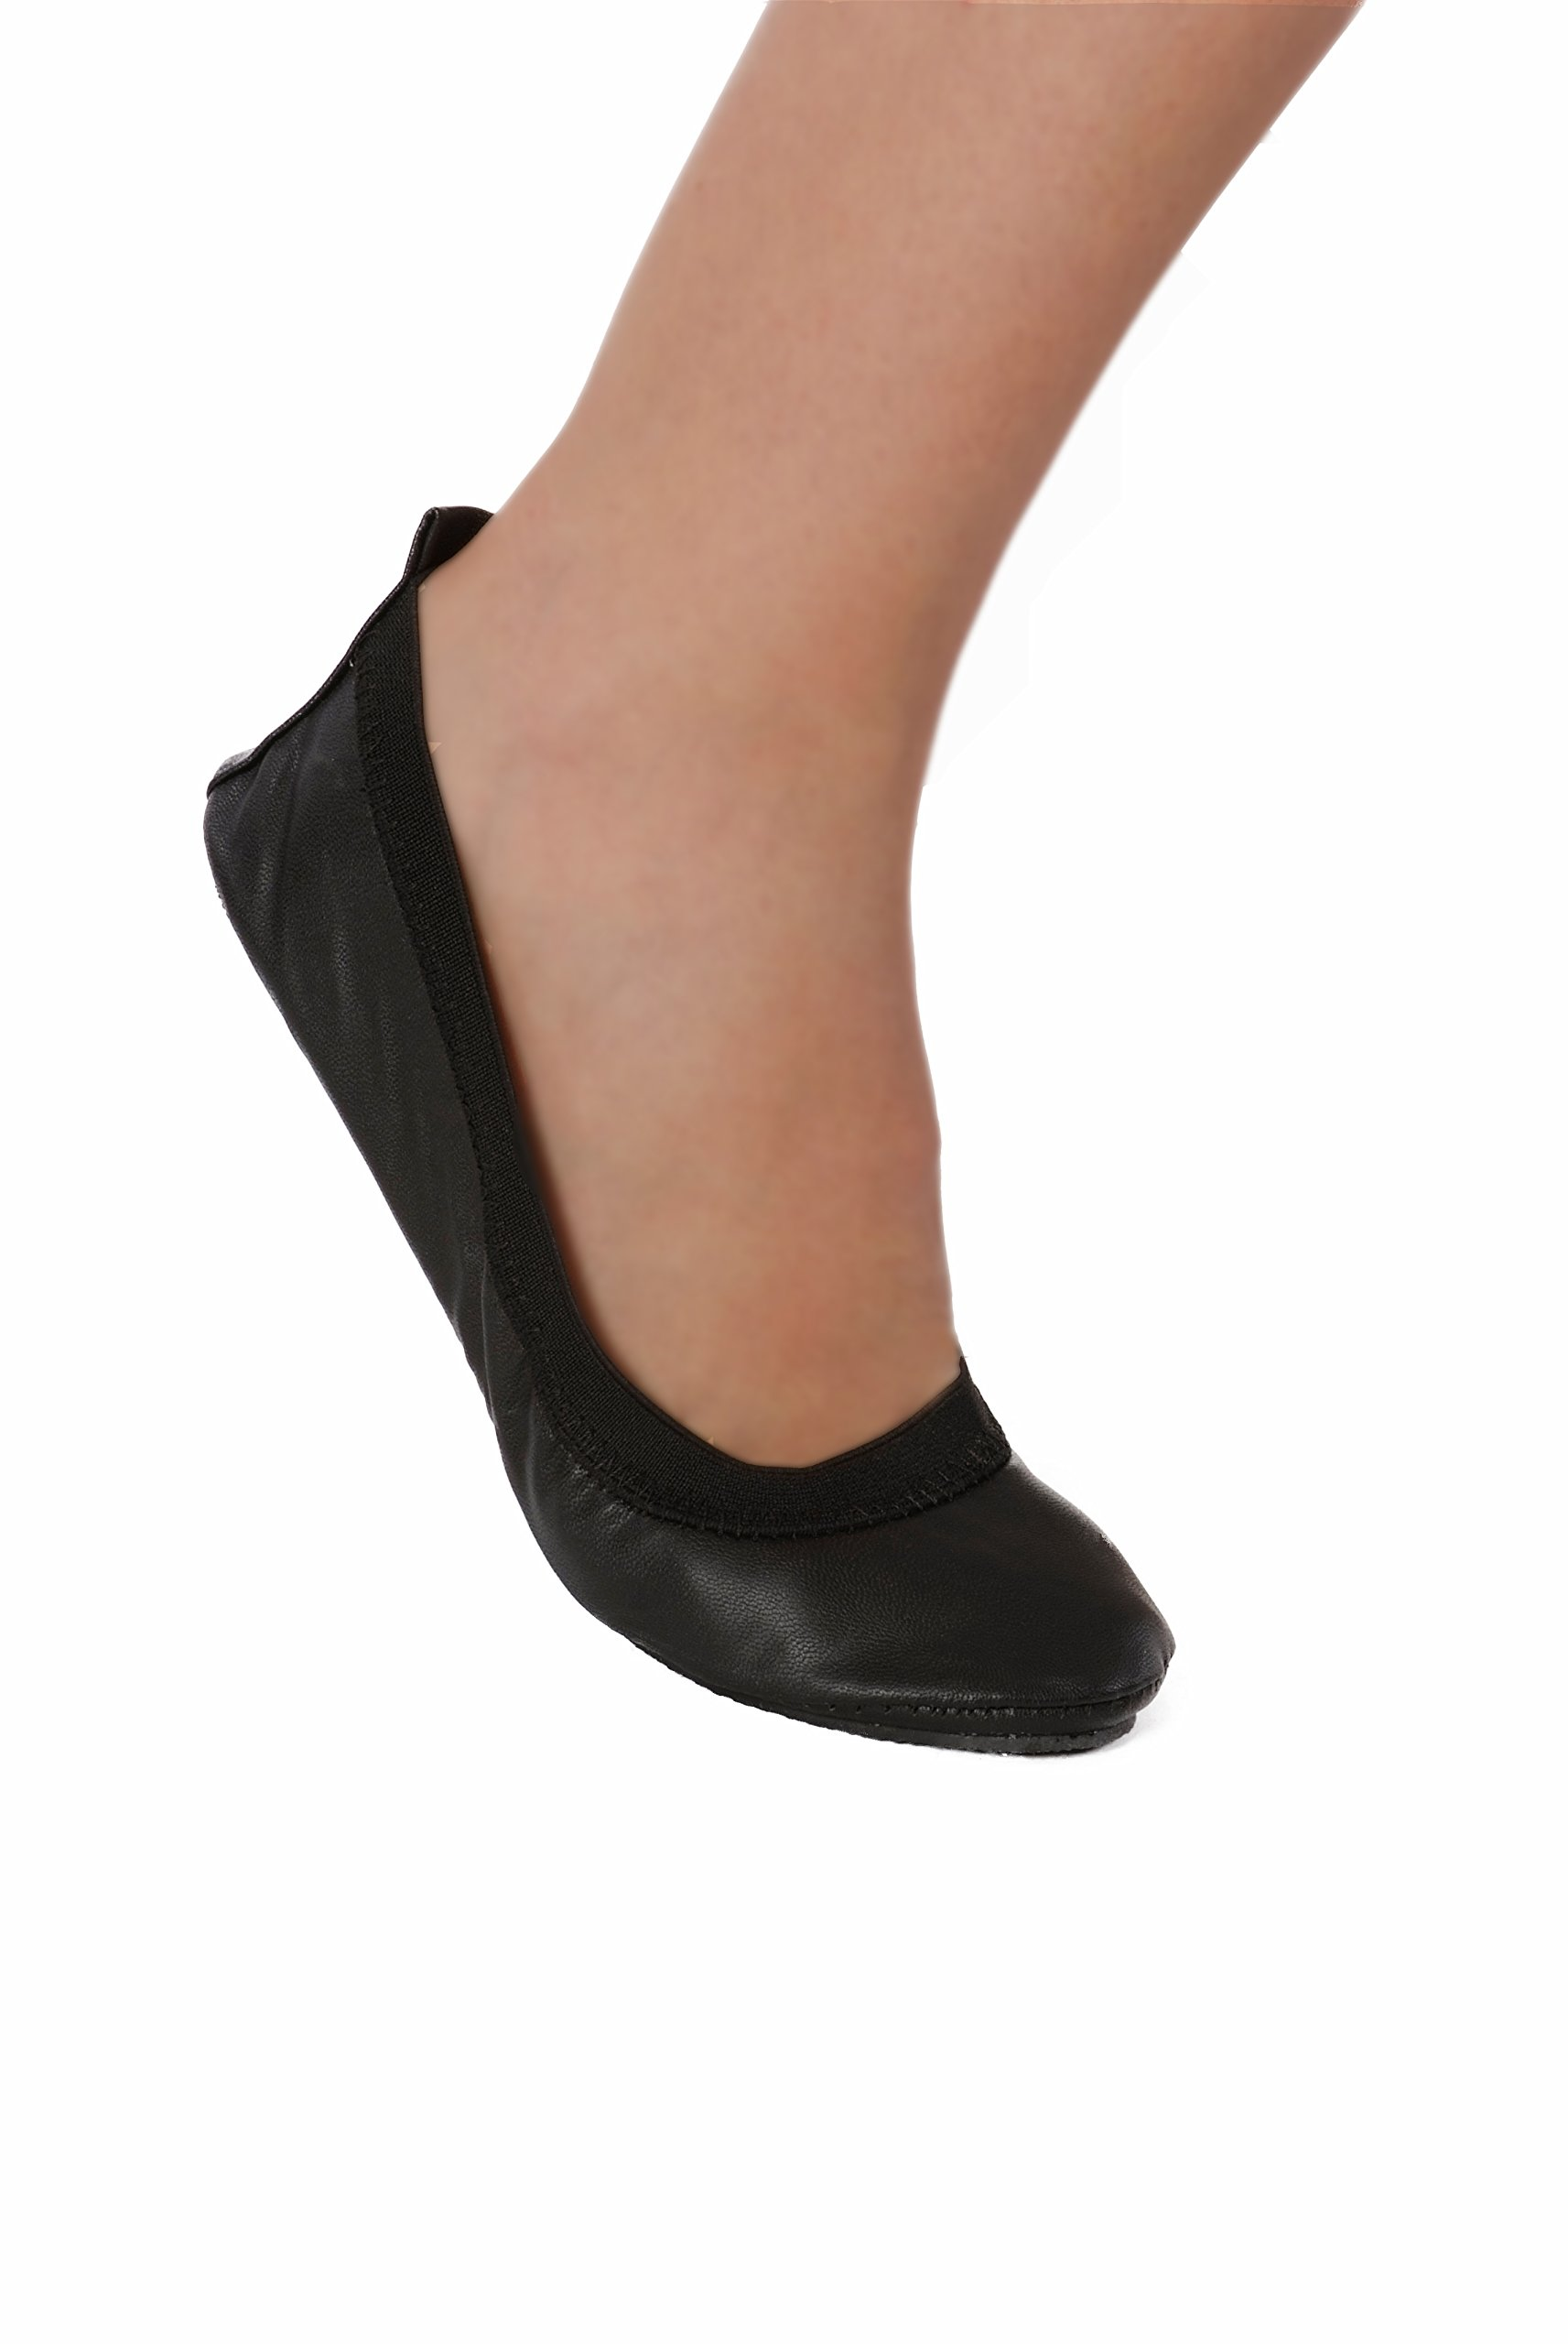 Fold up Ballet Flats - Foldable Shoes - Purse Pack Opens to Reveal a Handy Tote Bag. Foldable Ballet Flat Shoes in Black Silver.Portable Travel Foldable Ballet Flats! (Medium (Size 7-8), Black)